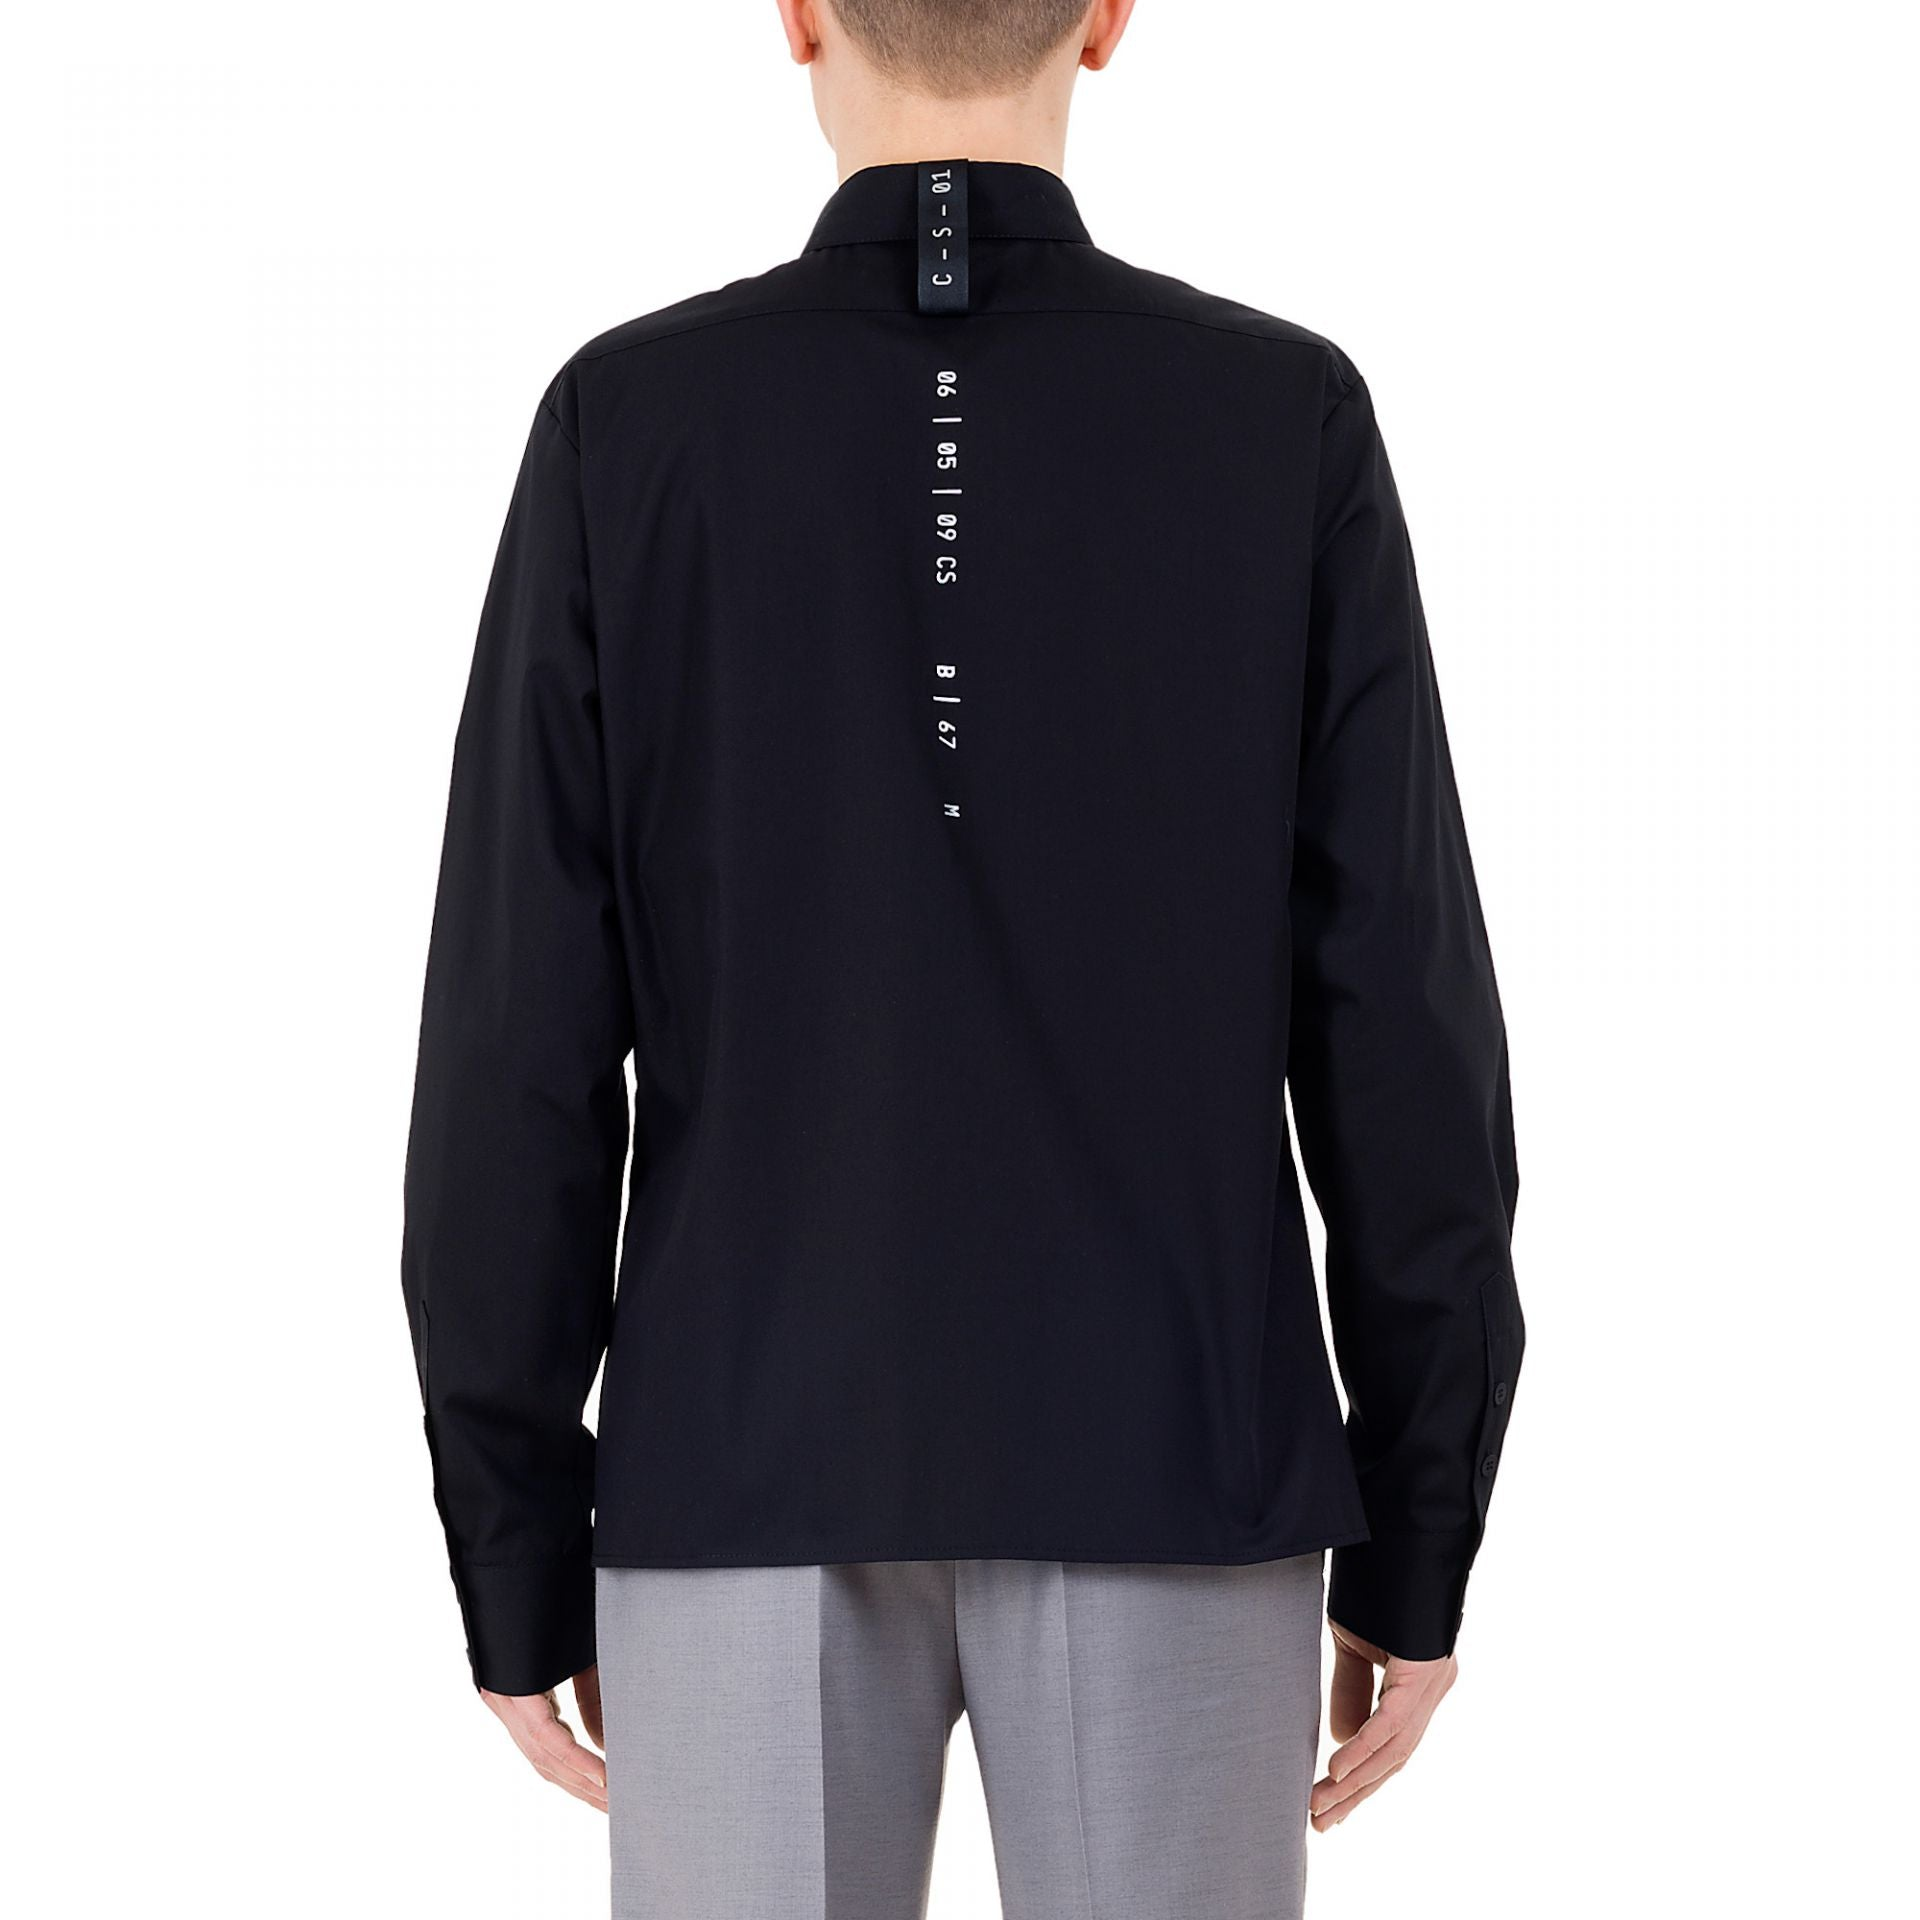 CLASSIC CODED SHIRT BLACK